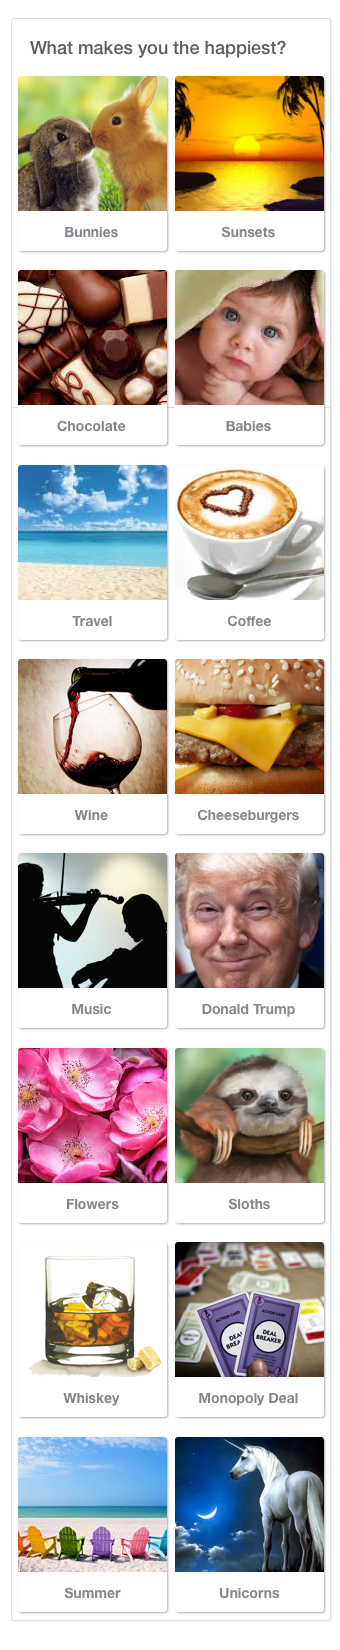 Polls_16 Images.png